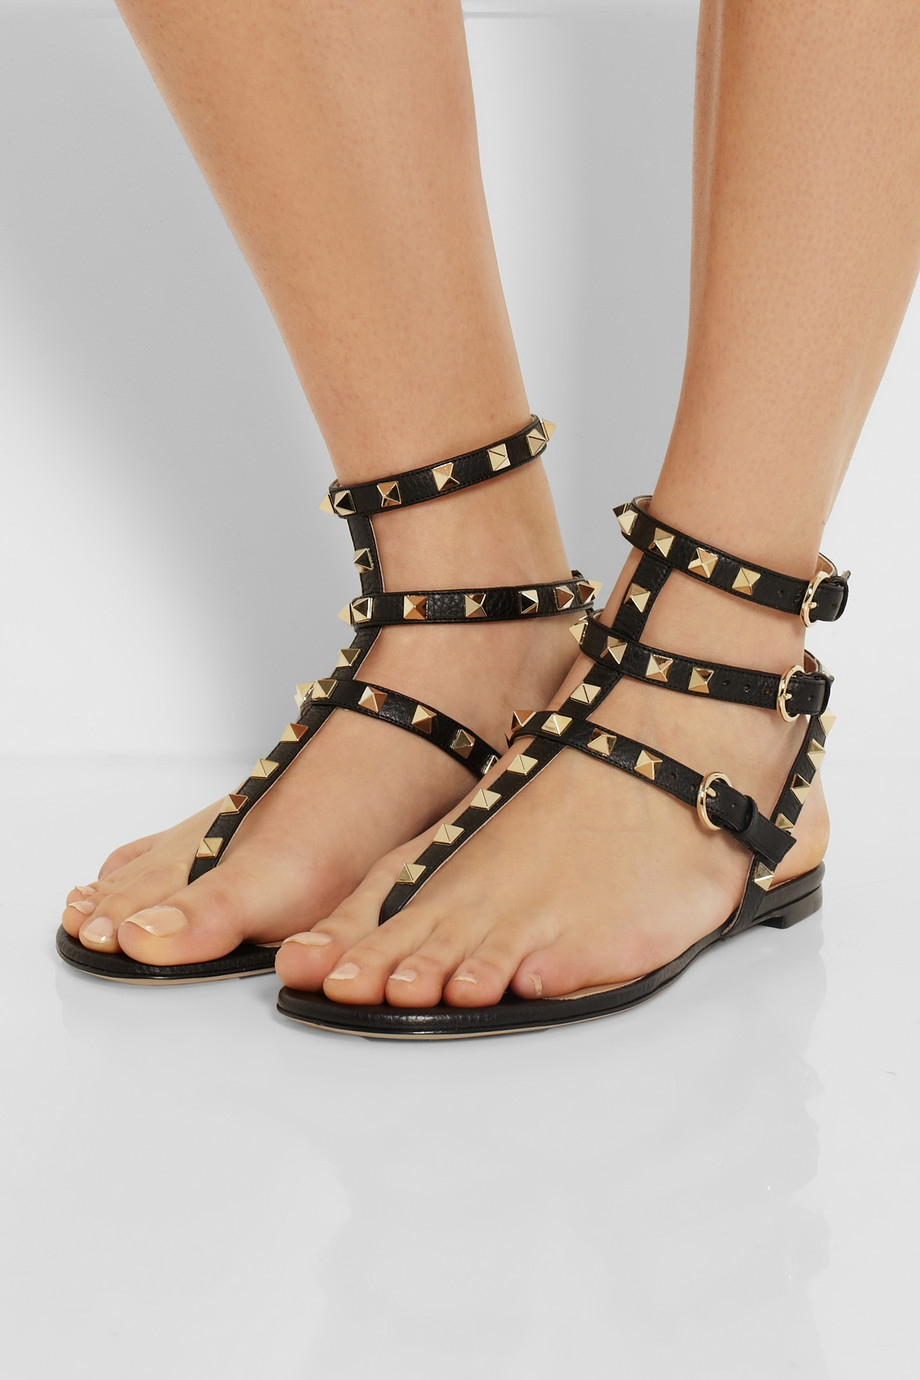 a7a8ab5eac97 valentino studded flip flops